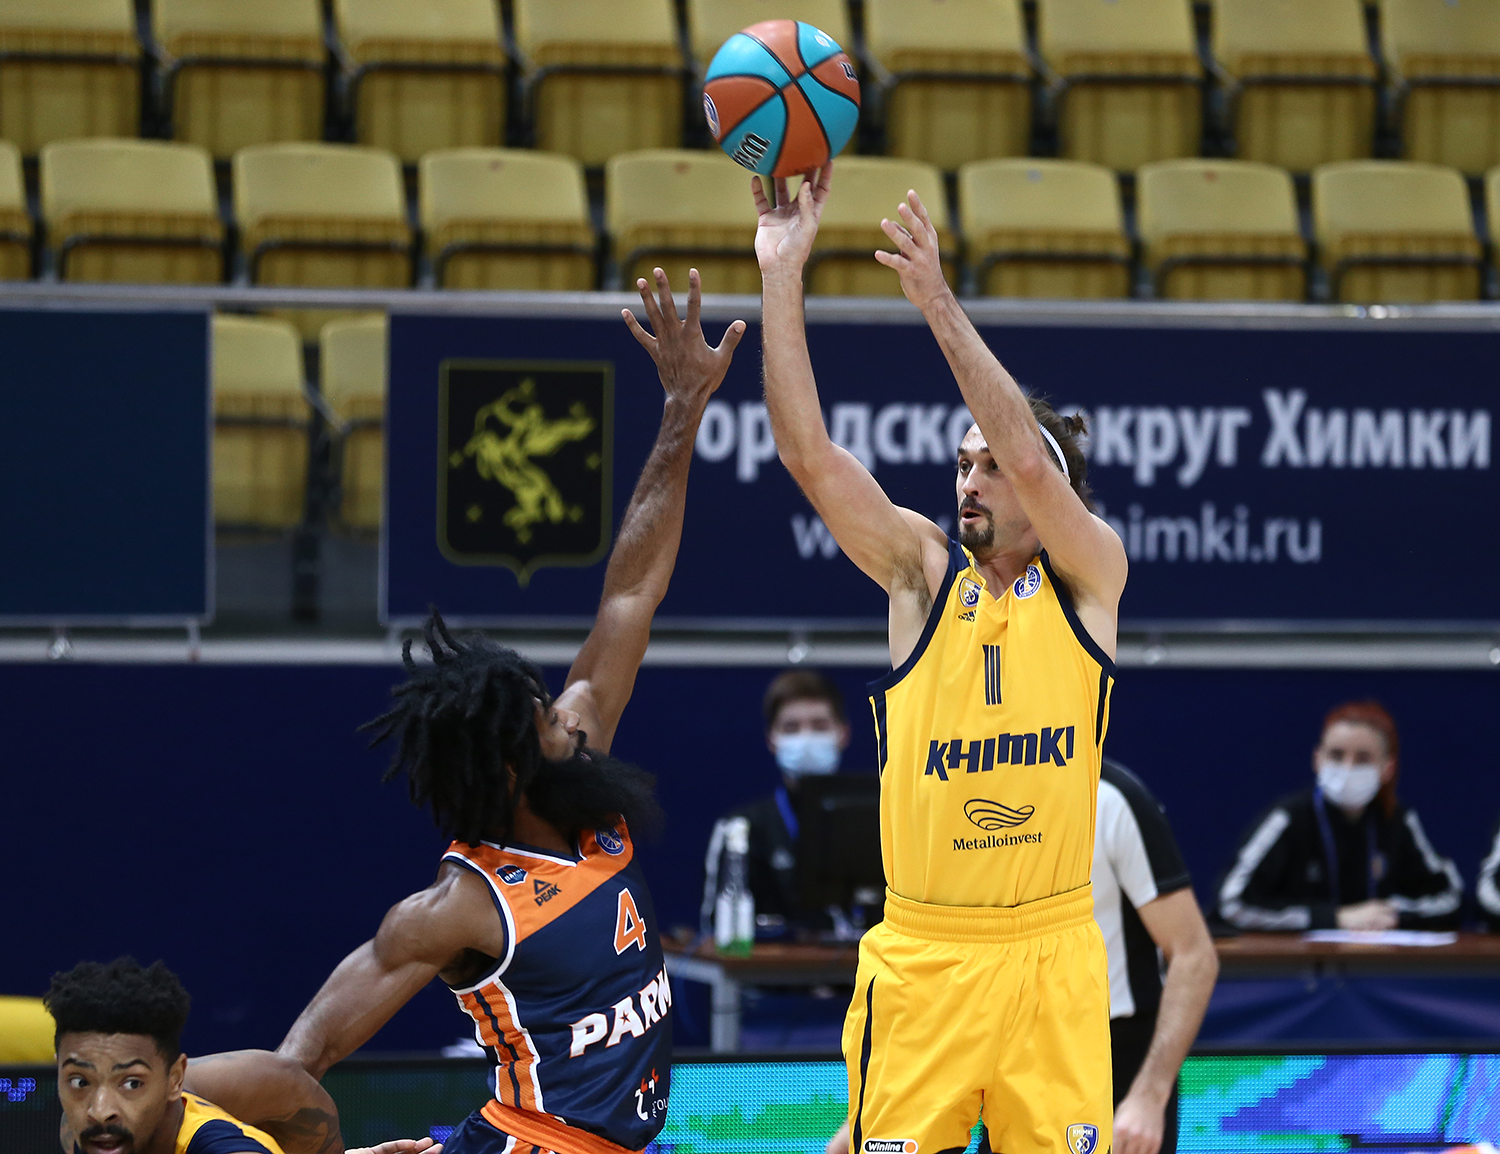 Khimki repeat season-high in threes and get back to the play-off zone